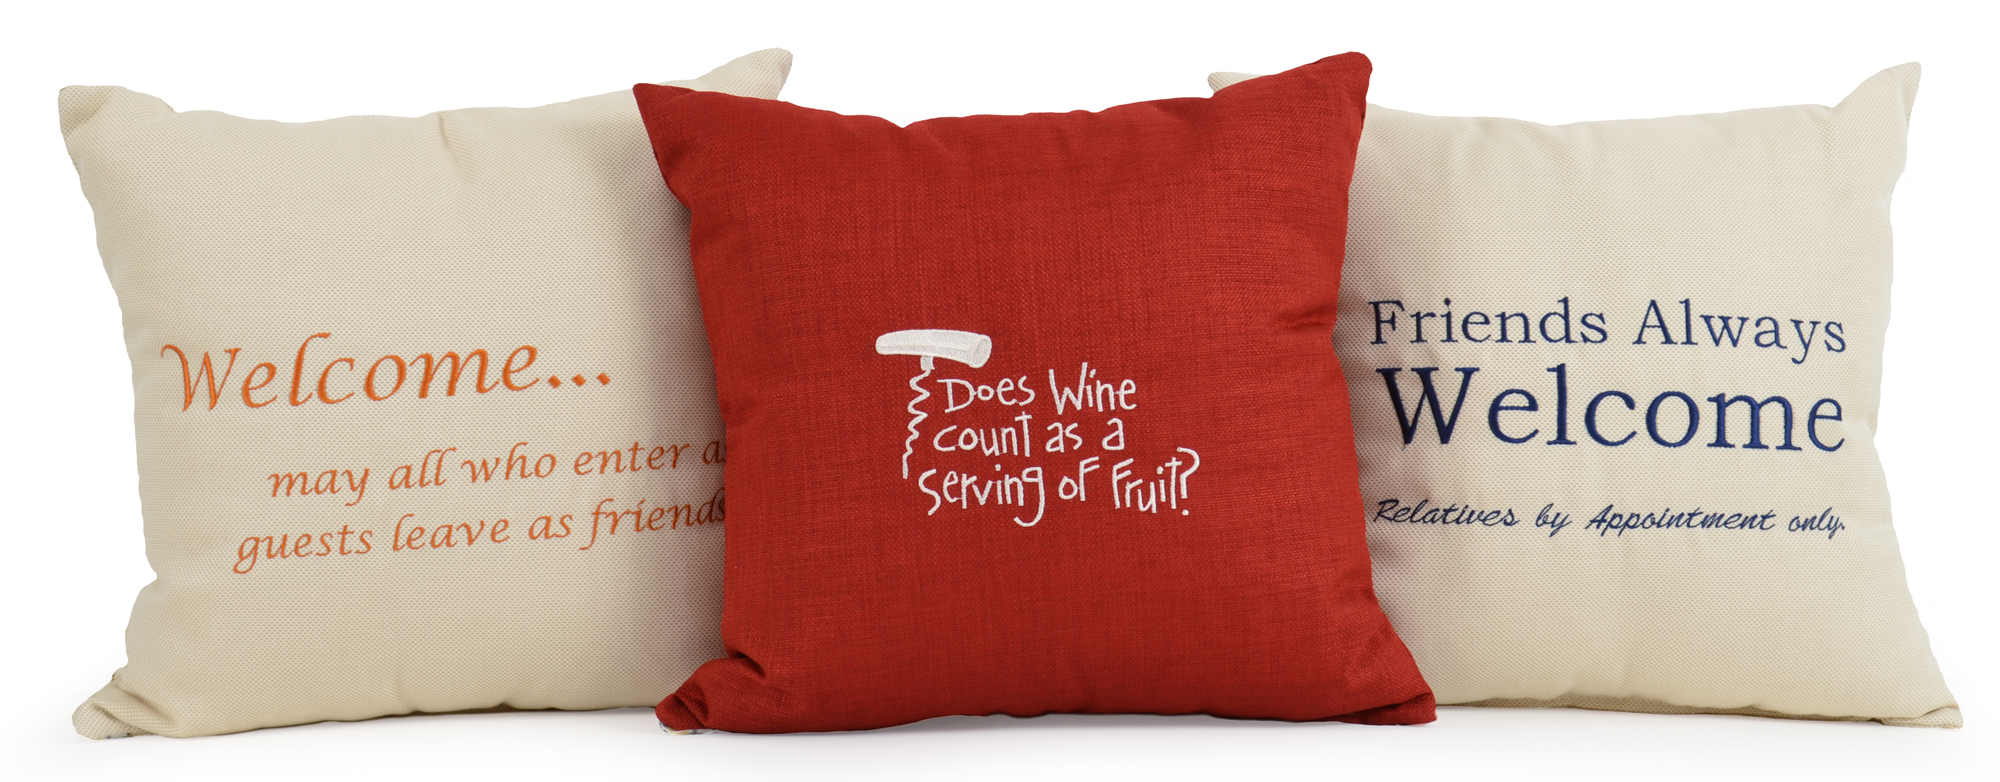 Embroidered Toss Pillows